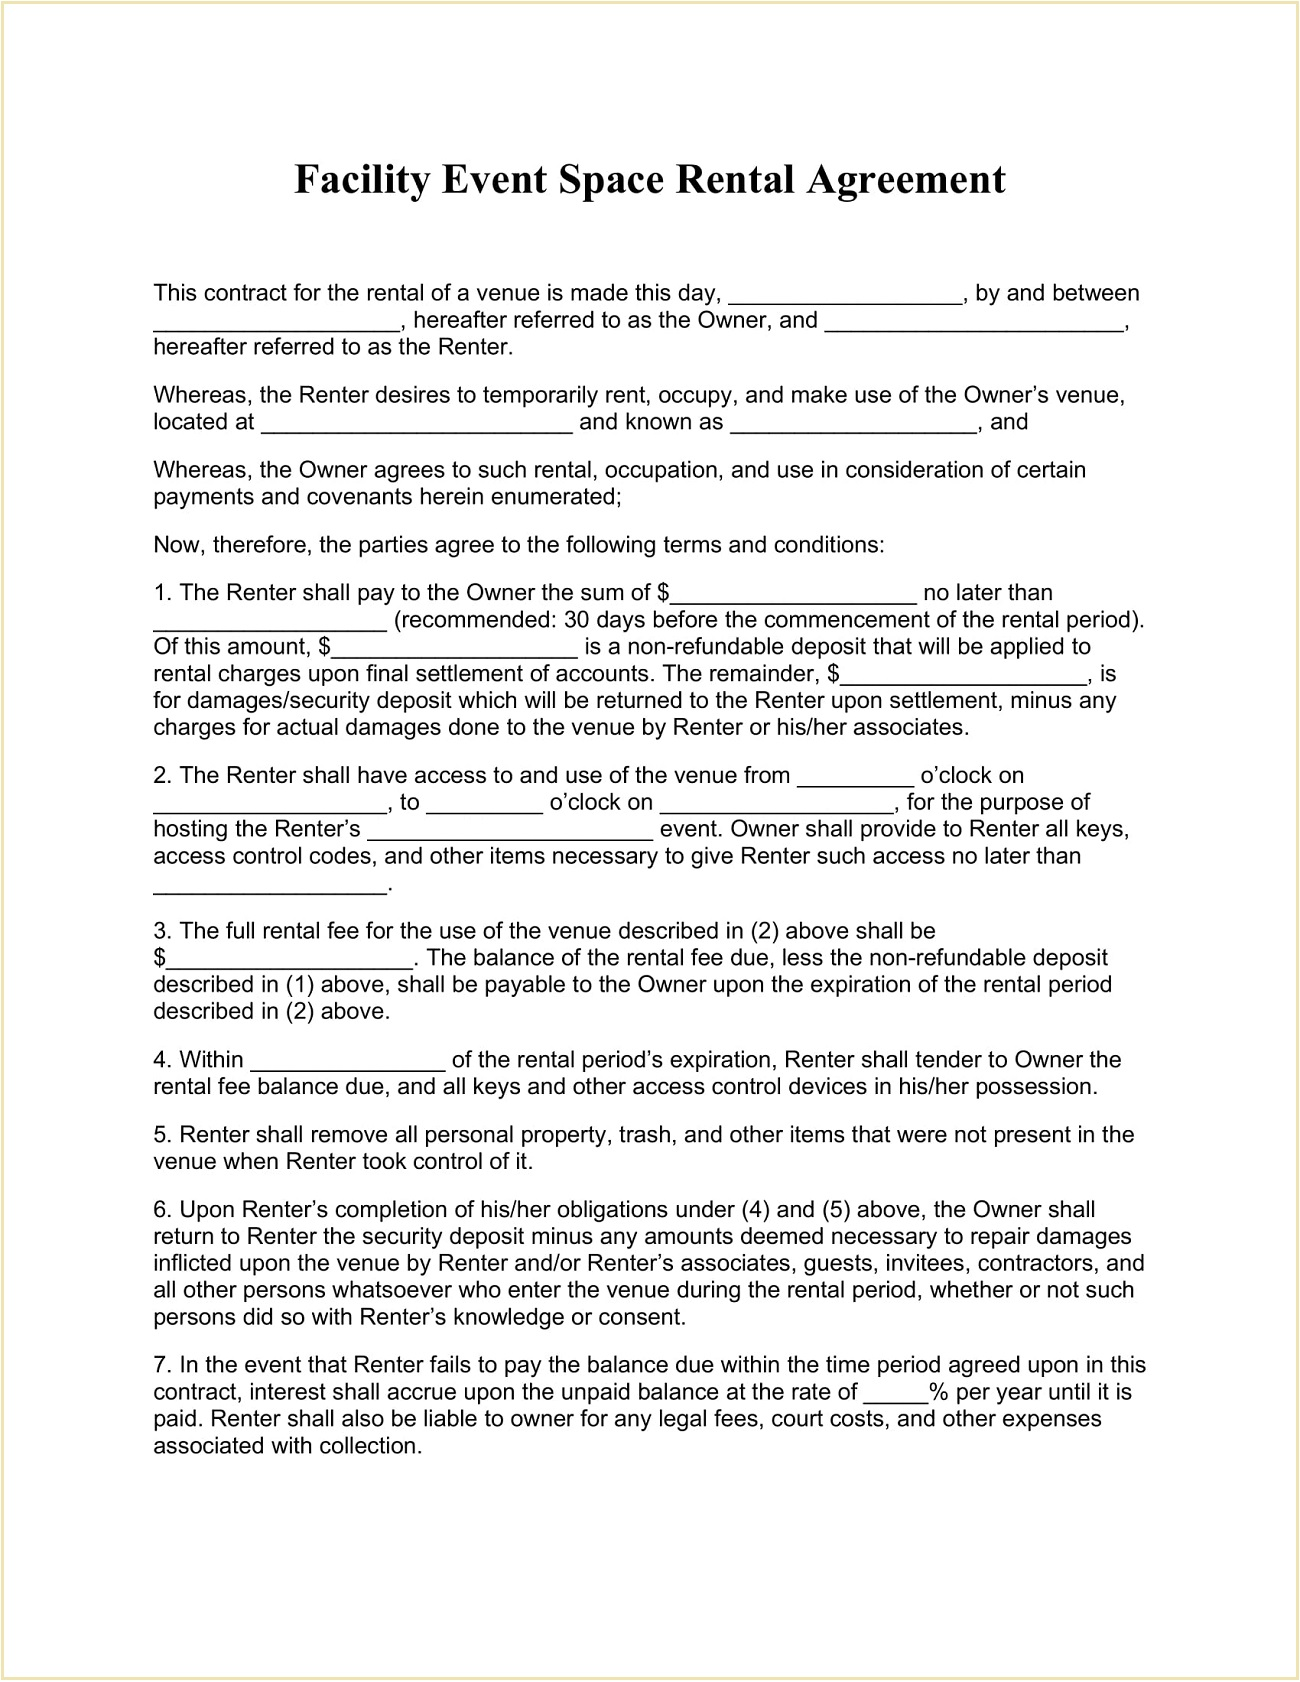 Facility Event Space Rental Agreement Template Form Word Doc